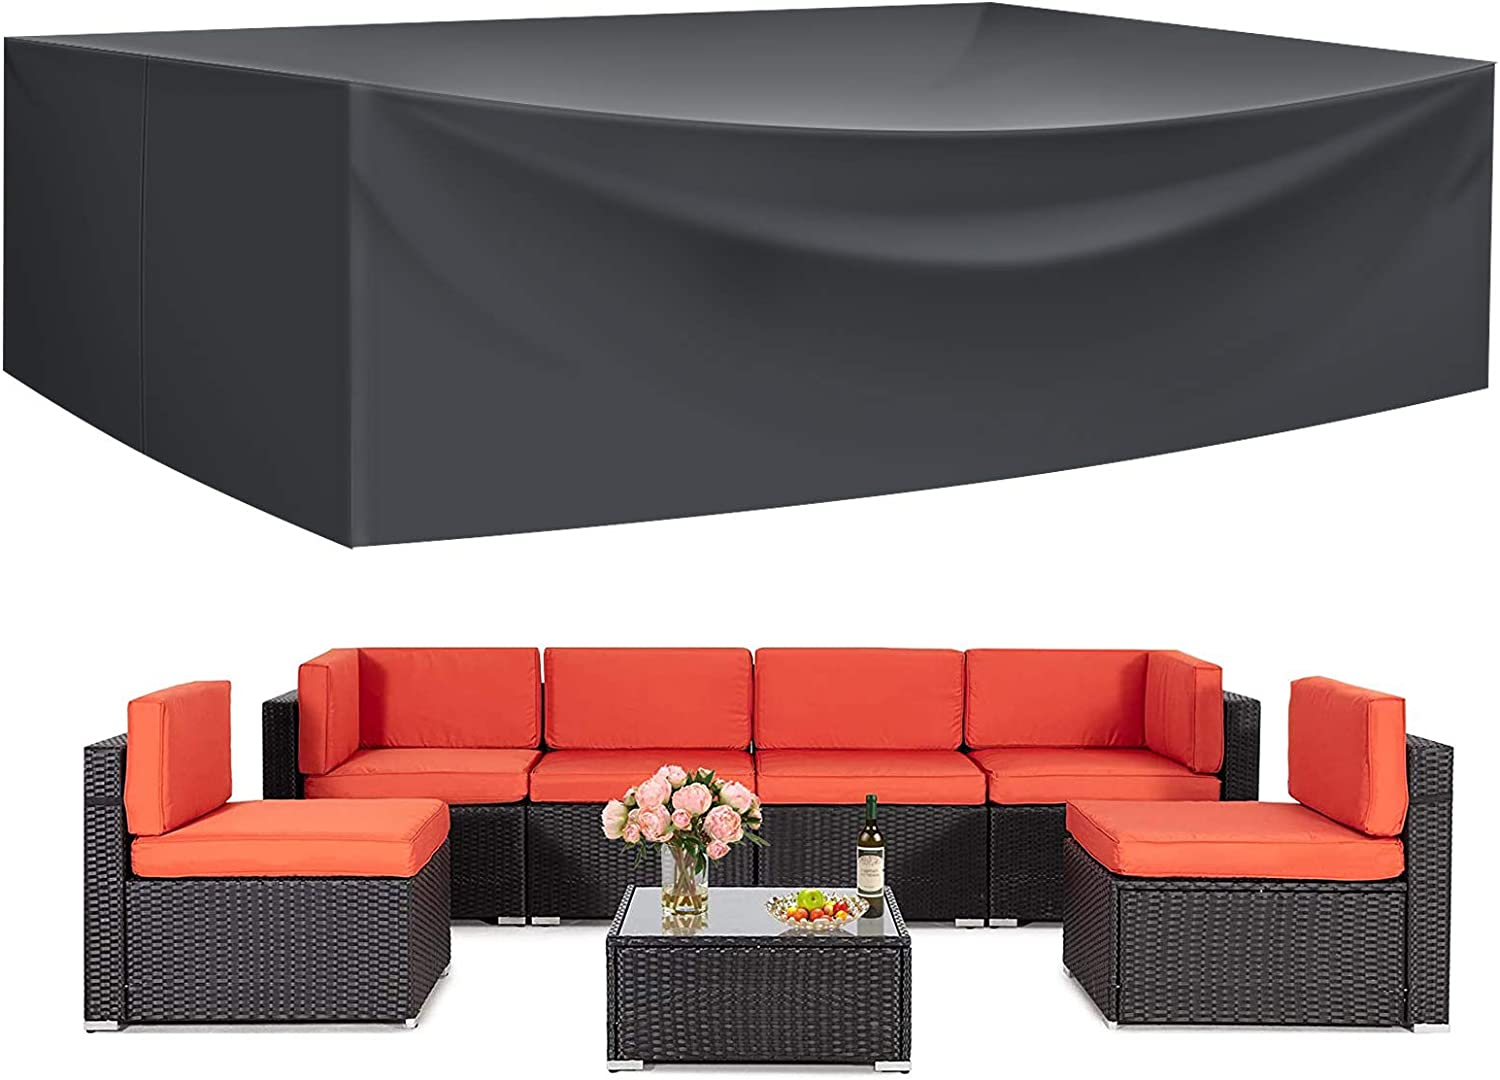 Patio Furniture Sectional Set Covers Outdoor security Fu Waterproof Popular overseas Large